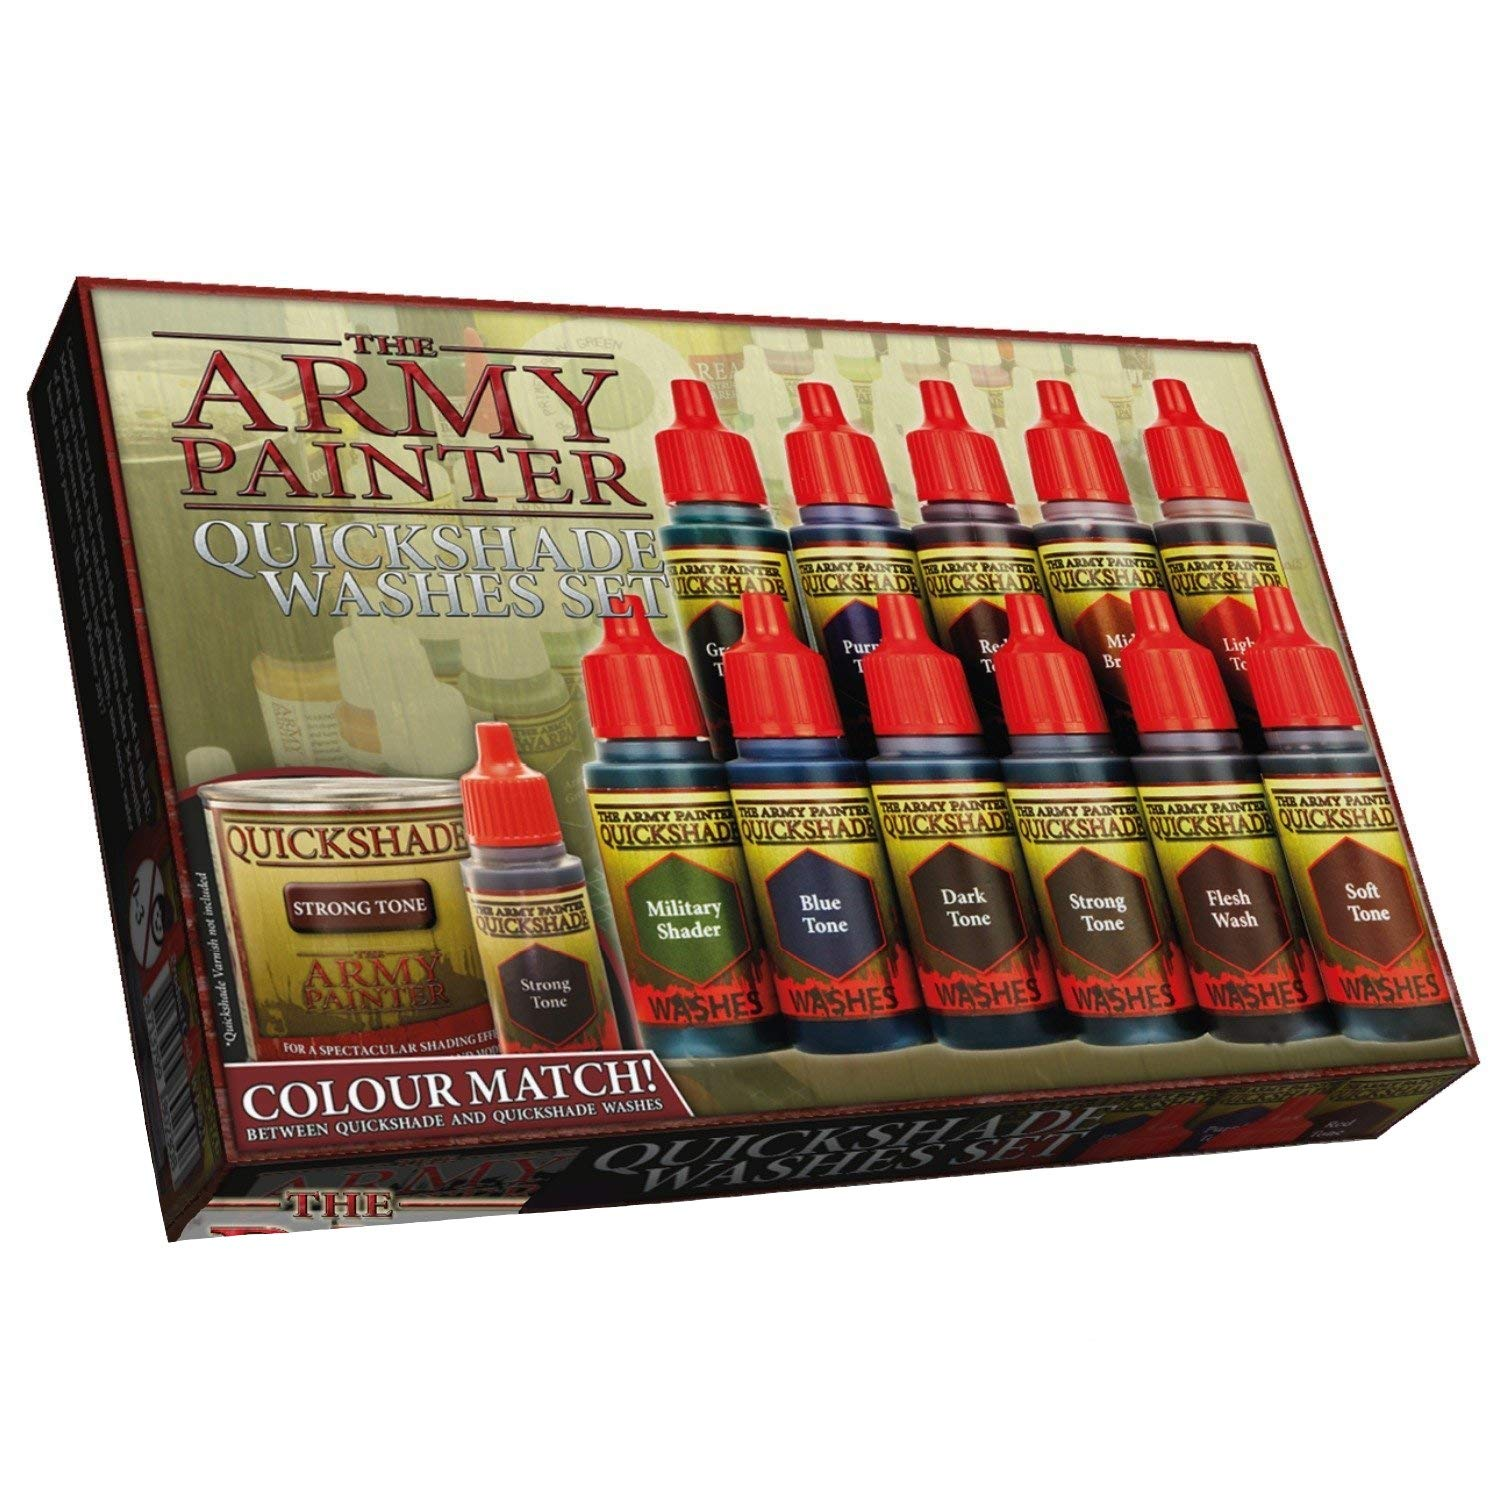 The Army Painter Warpaints Quickshade Wash Set - Miniature Painting Kit of 11 Dropper Bottles with Fluid Acrylic Paint Color Washes by The Army Painter